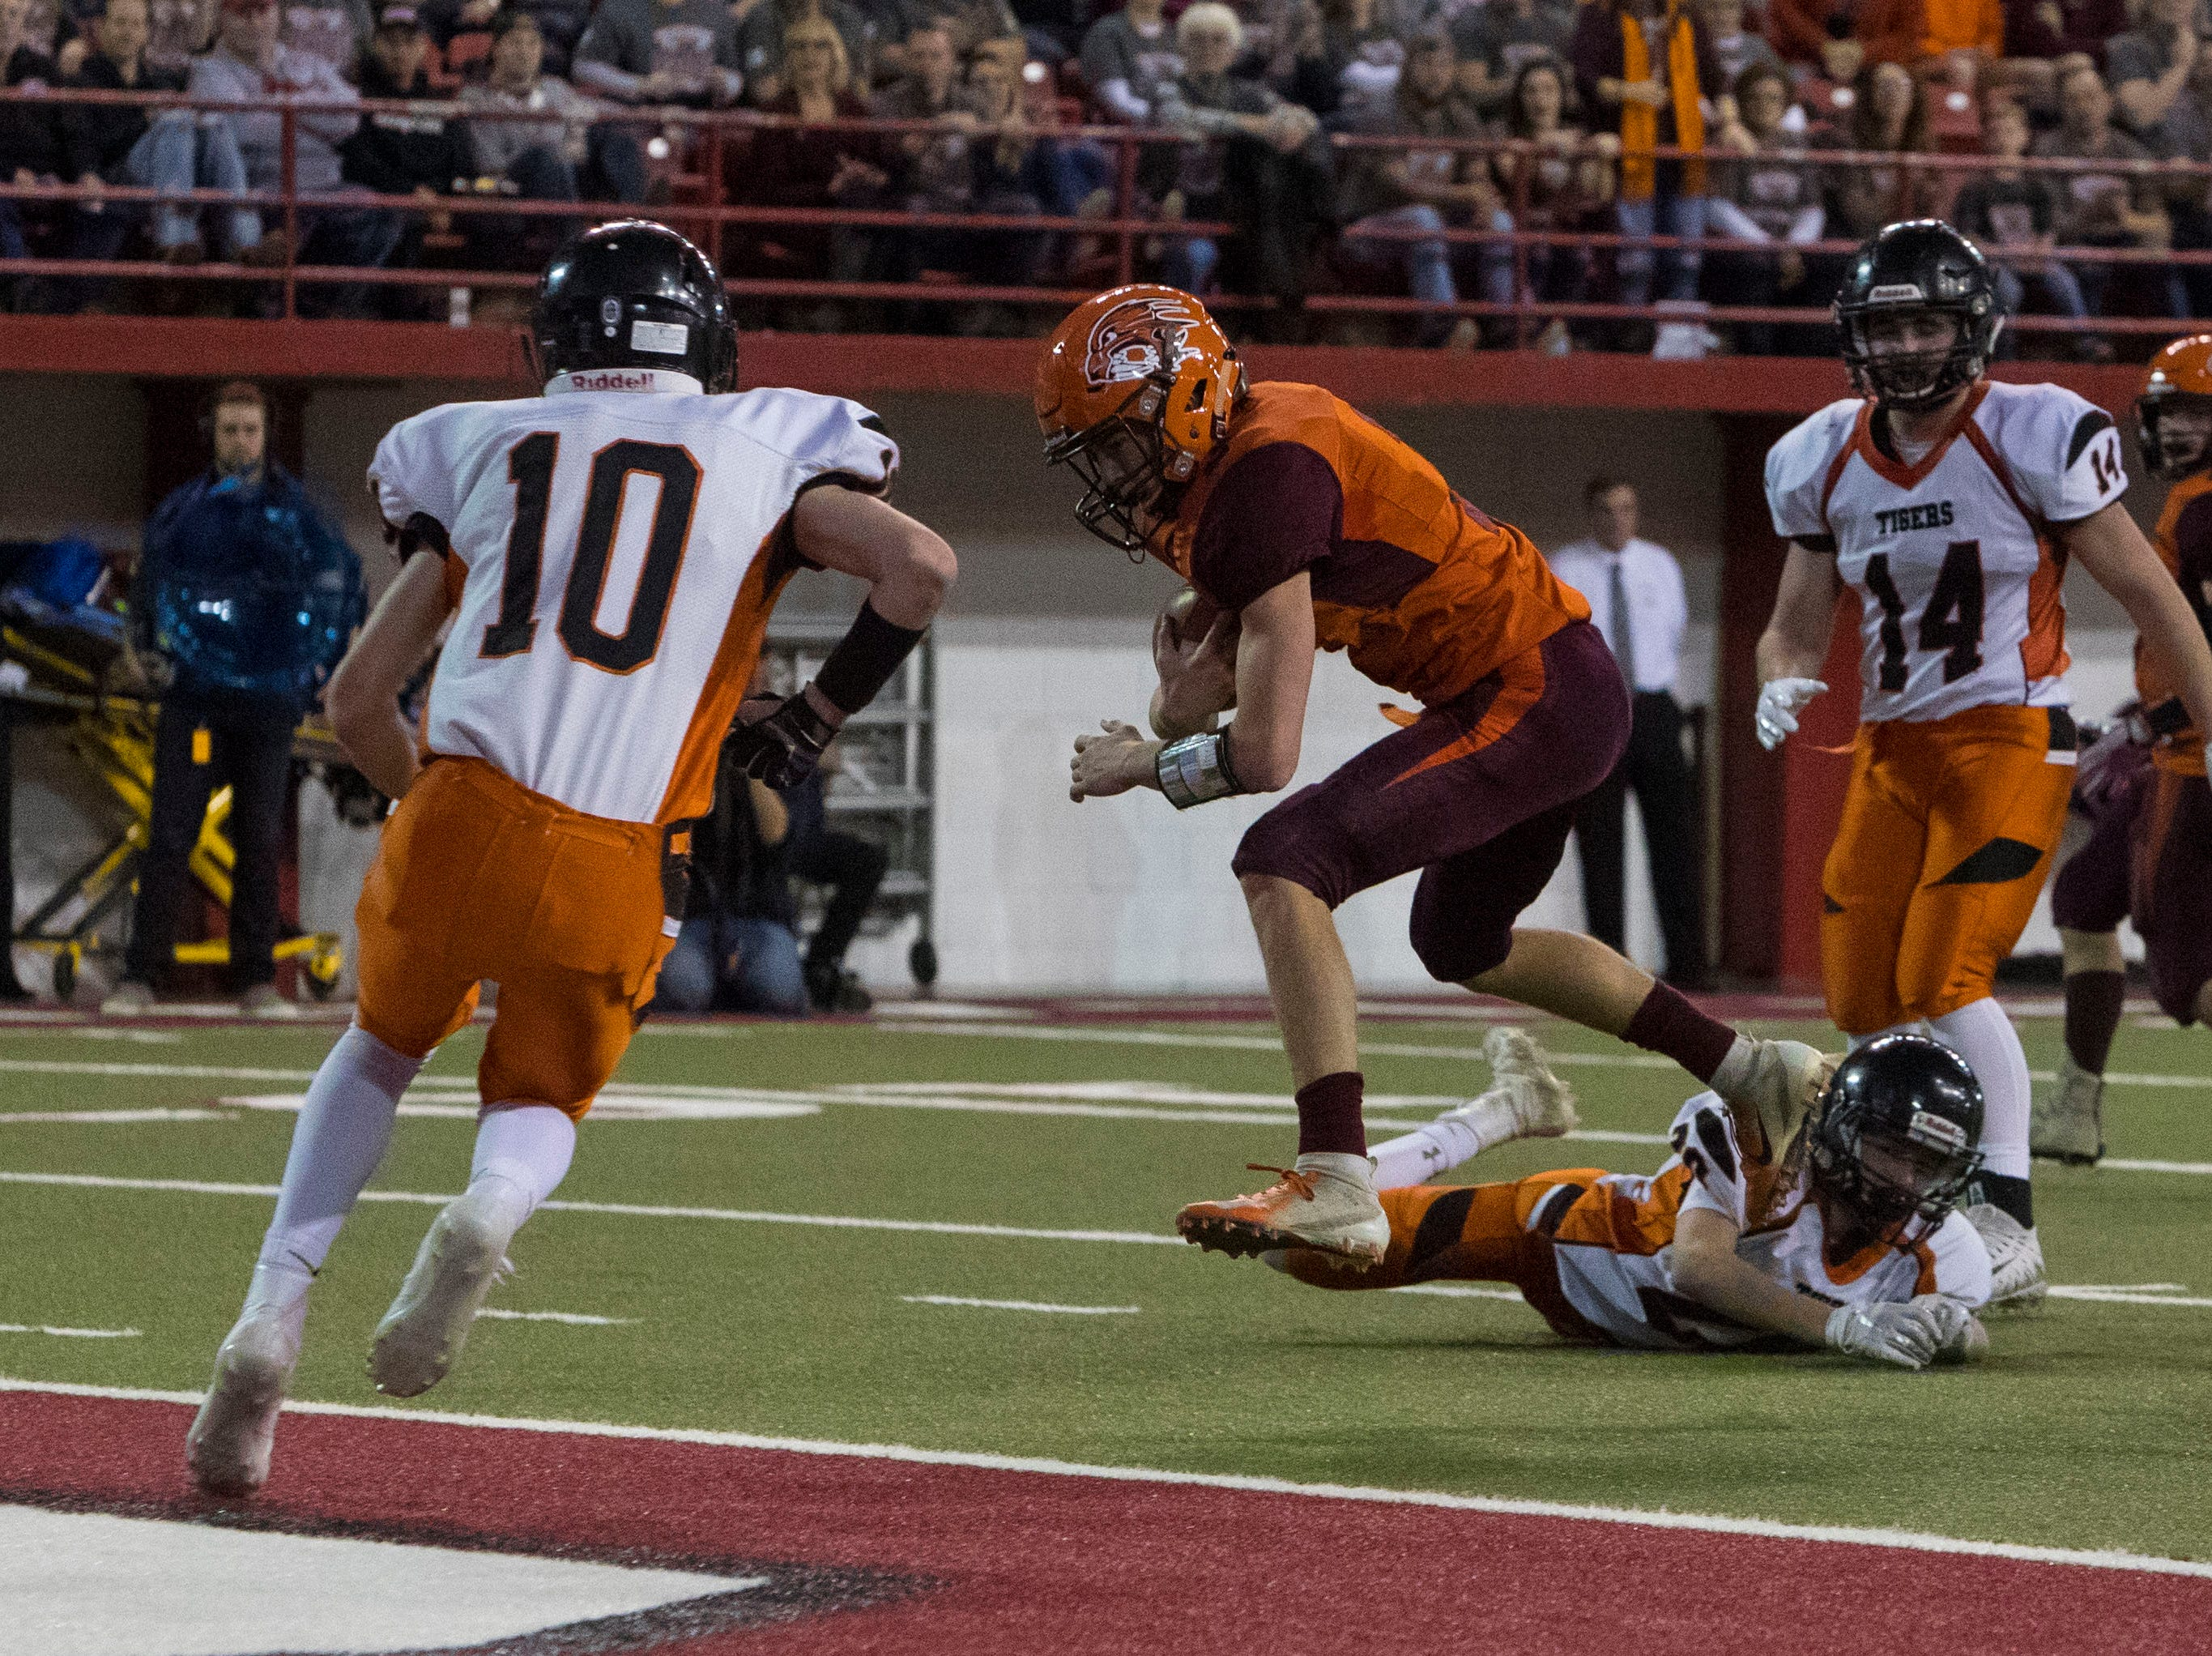 Canistota/Freeman player scores a touchdown during a game against Howard, Thursday, Nov. 8, 2018 at the DakotaDome in Vermillion, S.D.